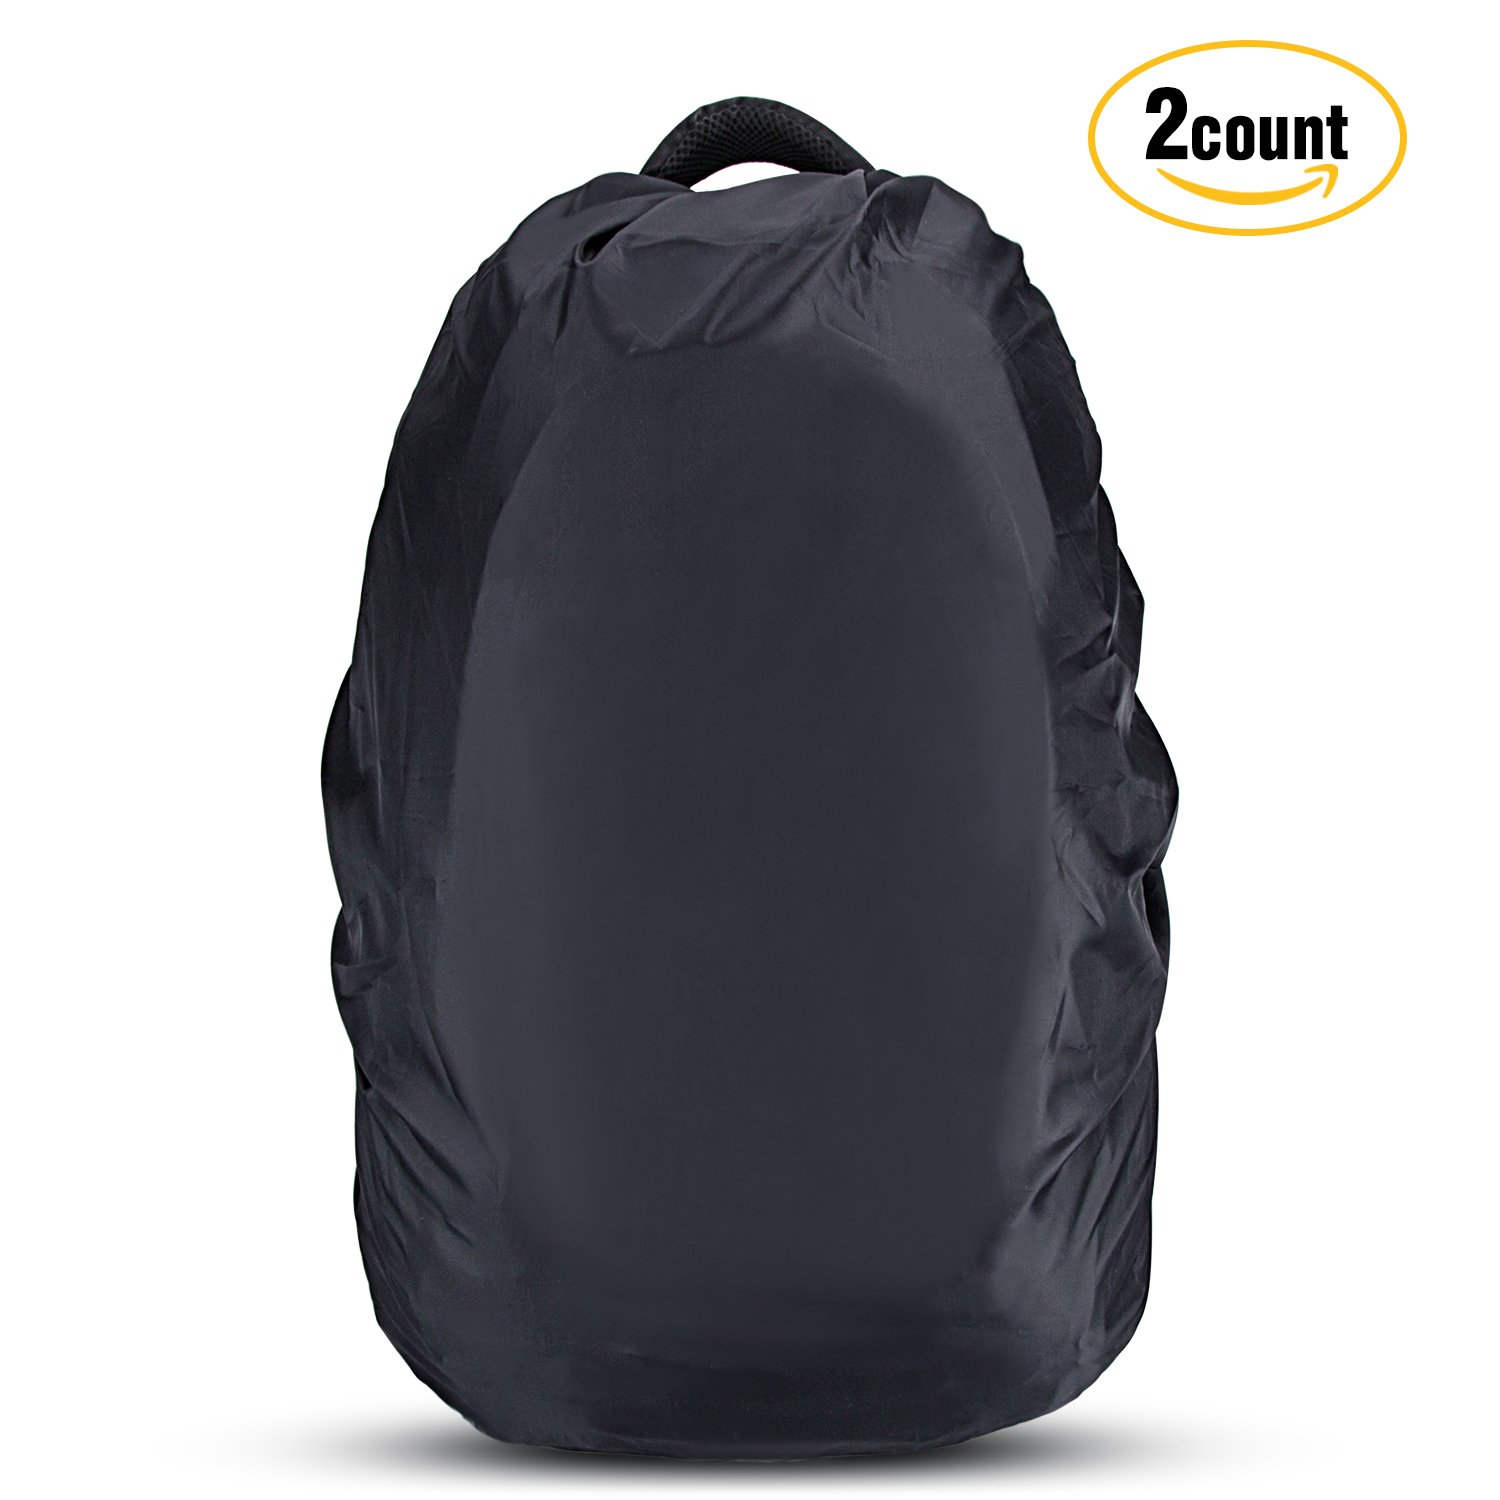 AGPTEK Waterproof Backpack Rain Cover, Pack of 2, Black(M Size)